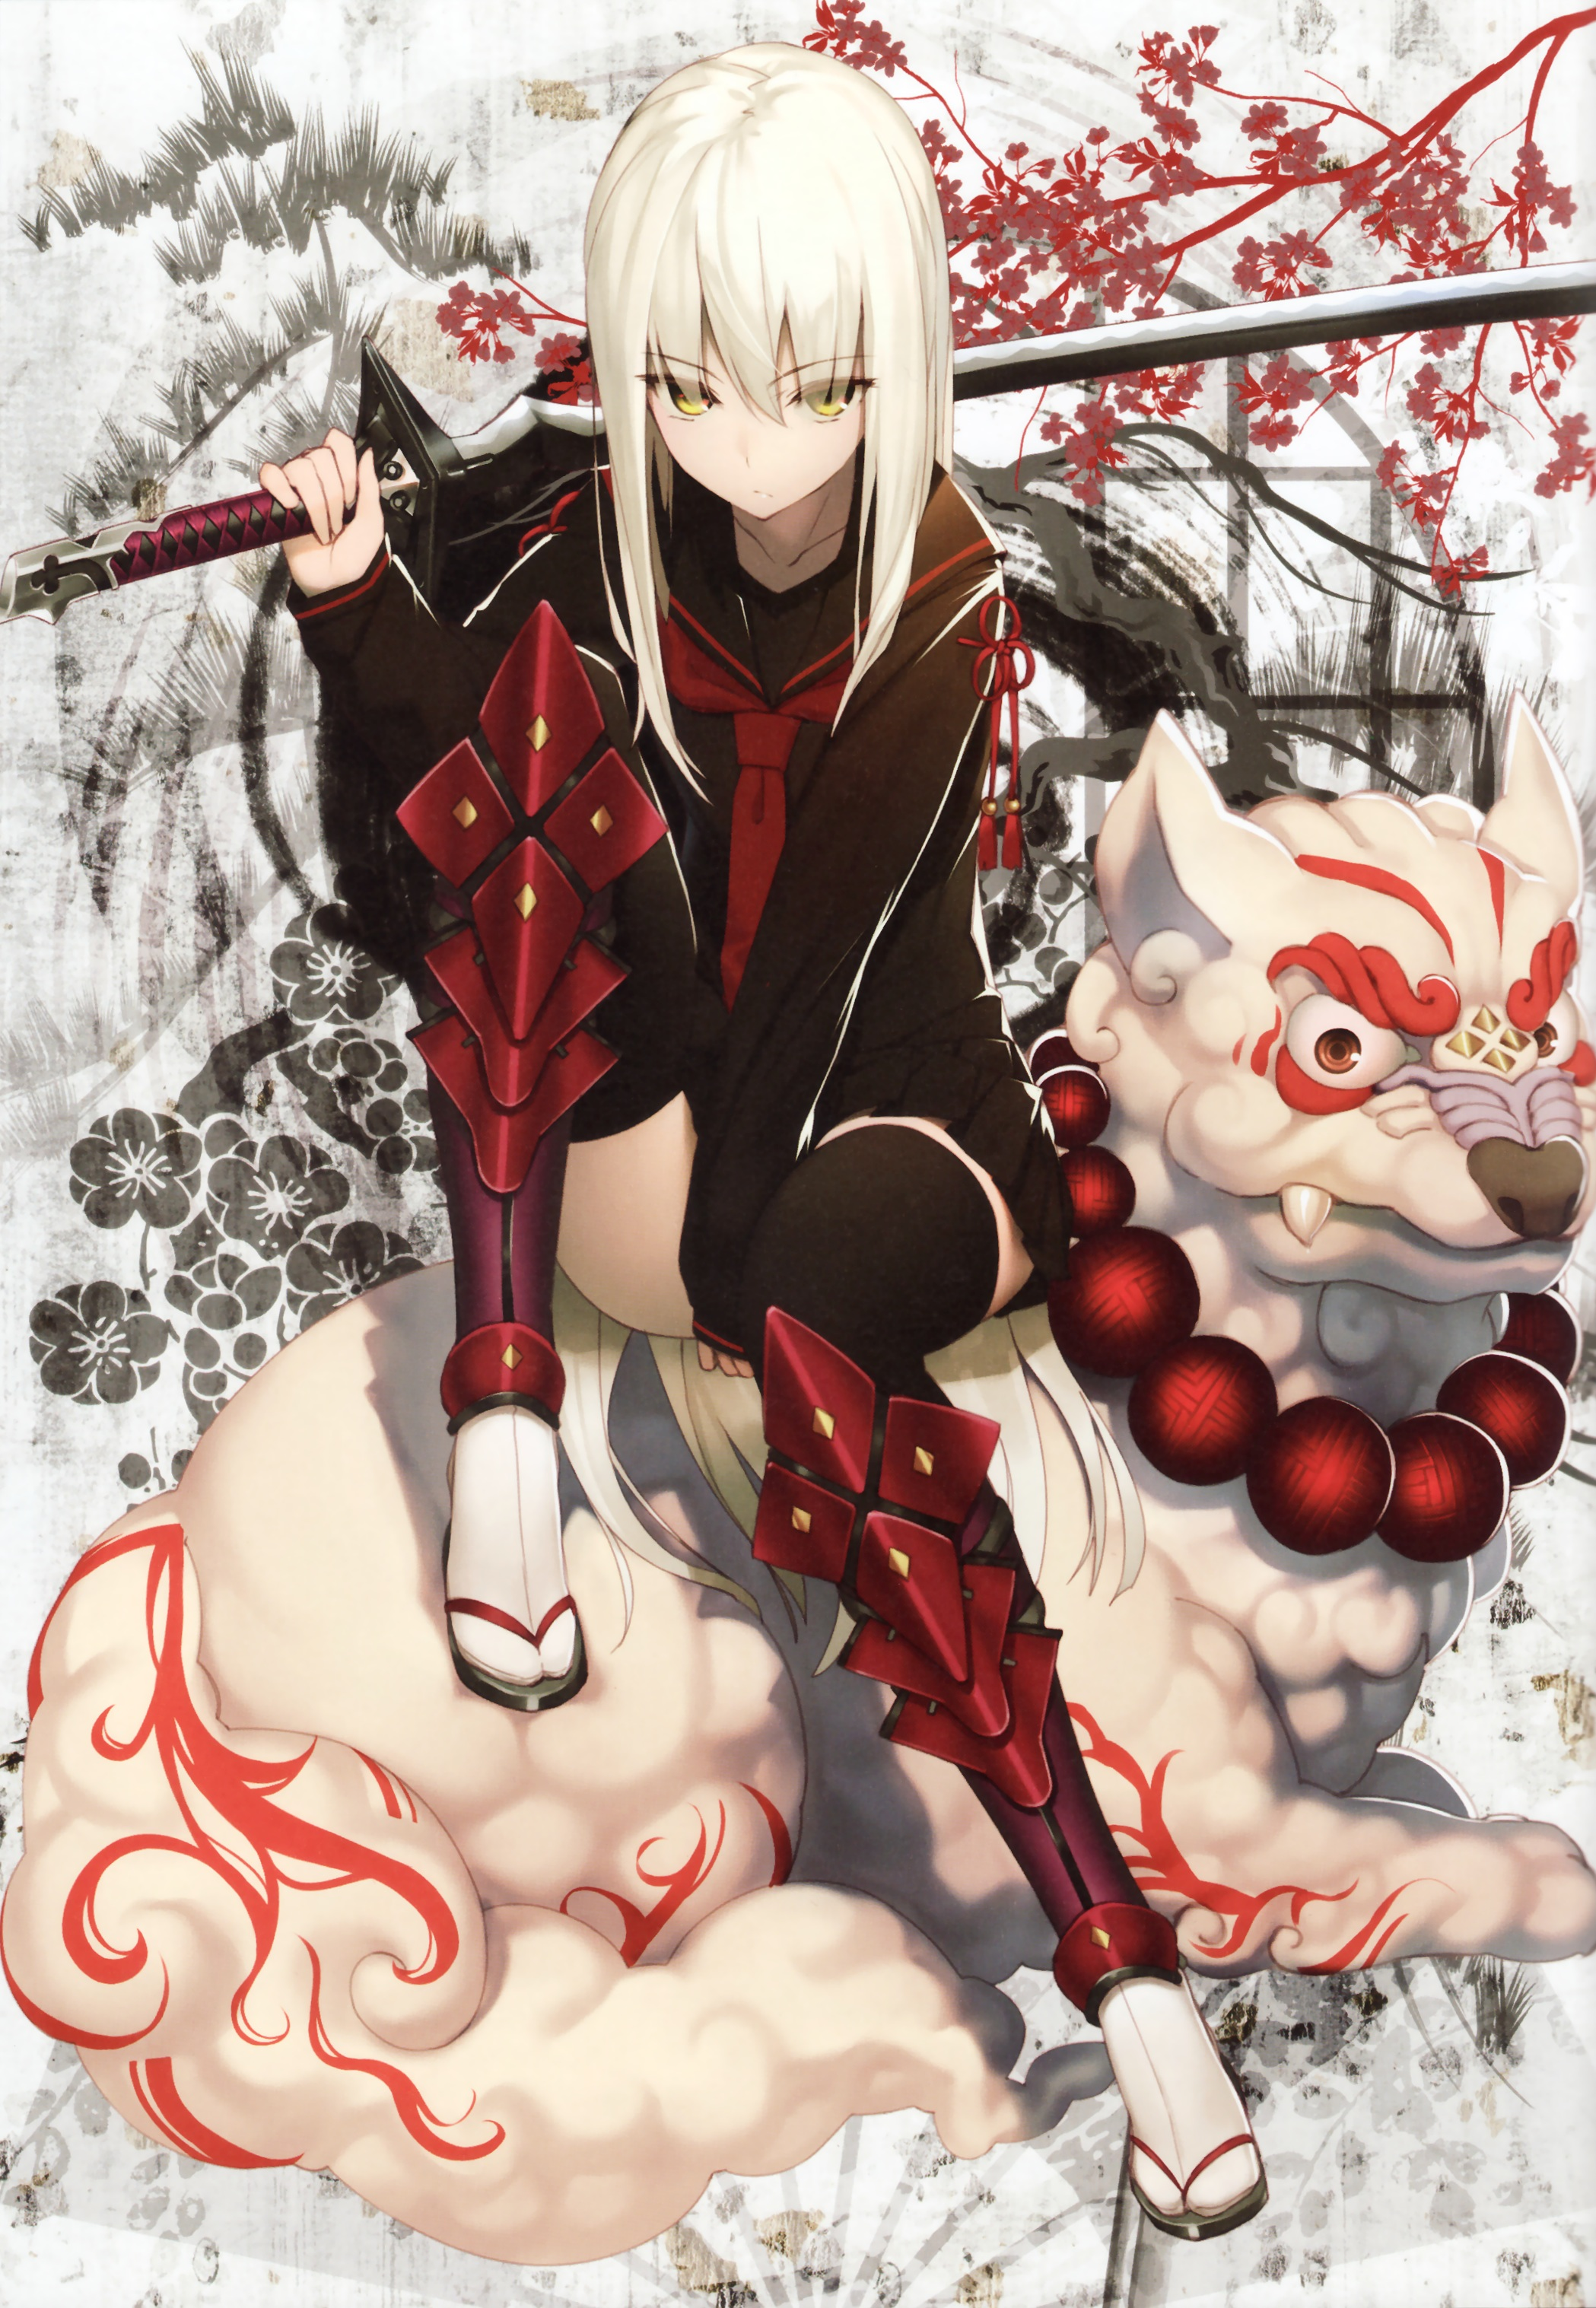 This-girl-somehow-resembles-Saber-so-much-but-with-a-little-twist-of-the-costume-from-Akame-ga-Kill-wallpaper-wp429930